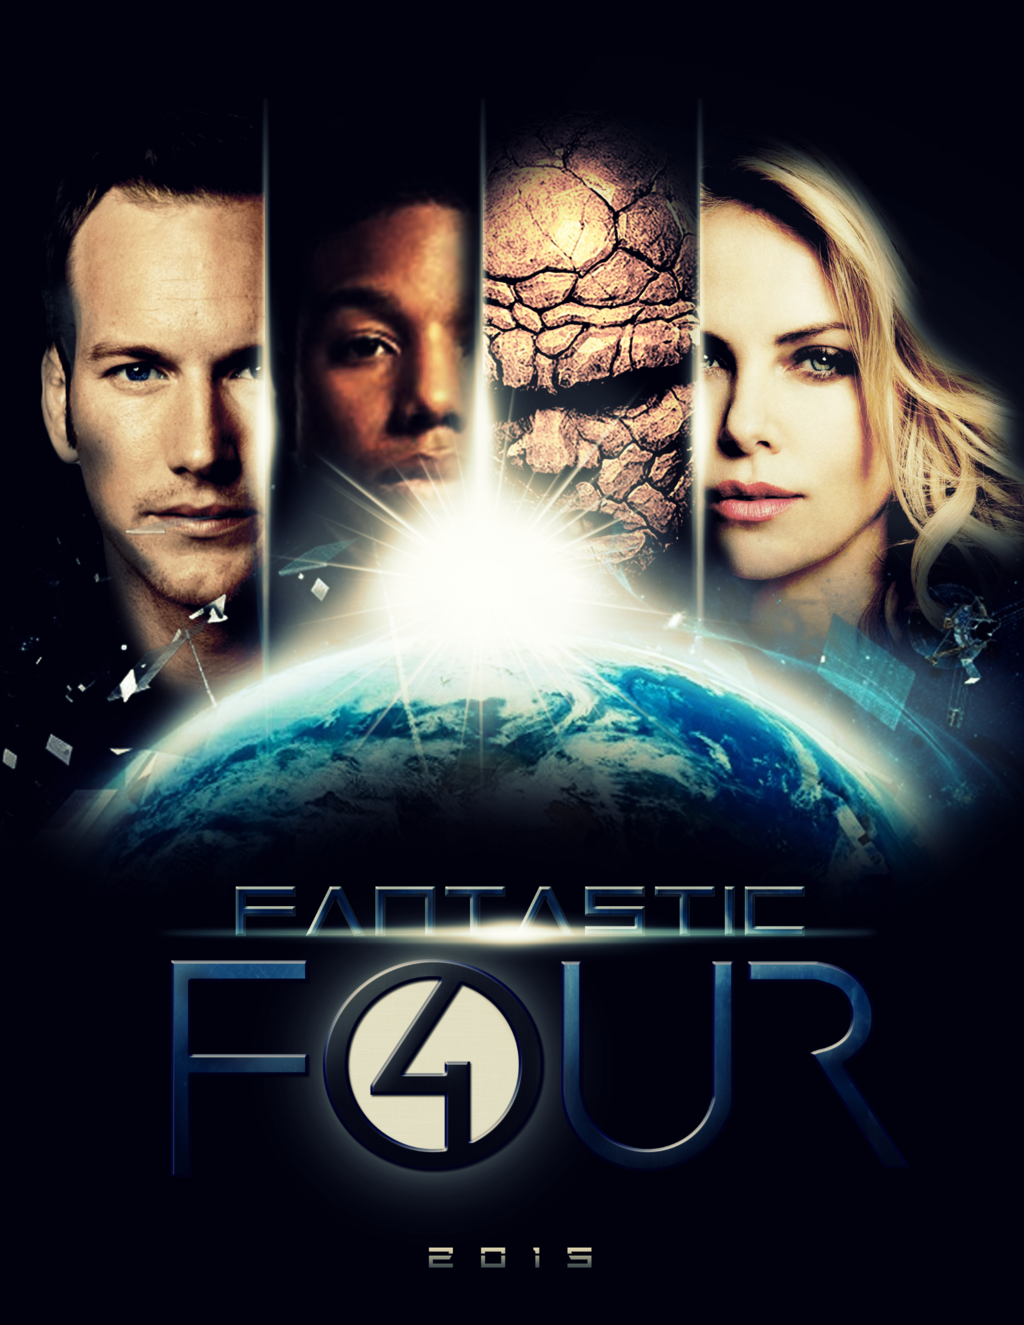 The Trailer for the Fantastic Four reboot has arrived